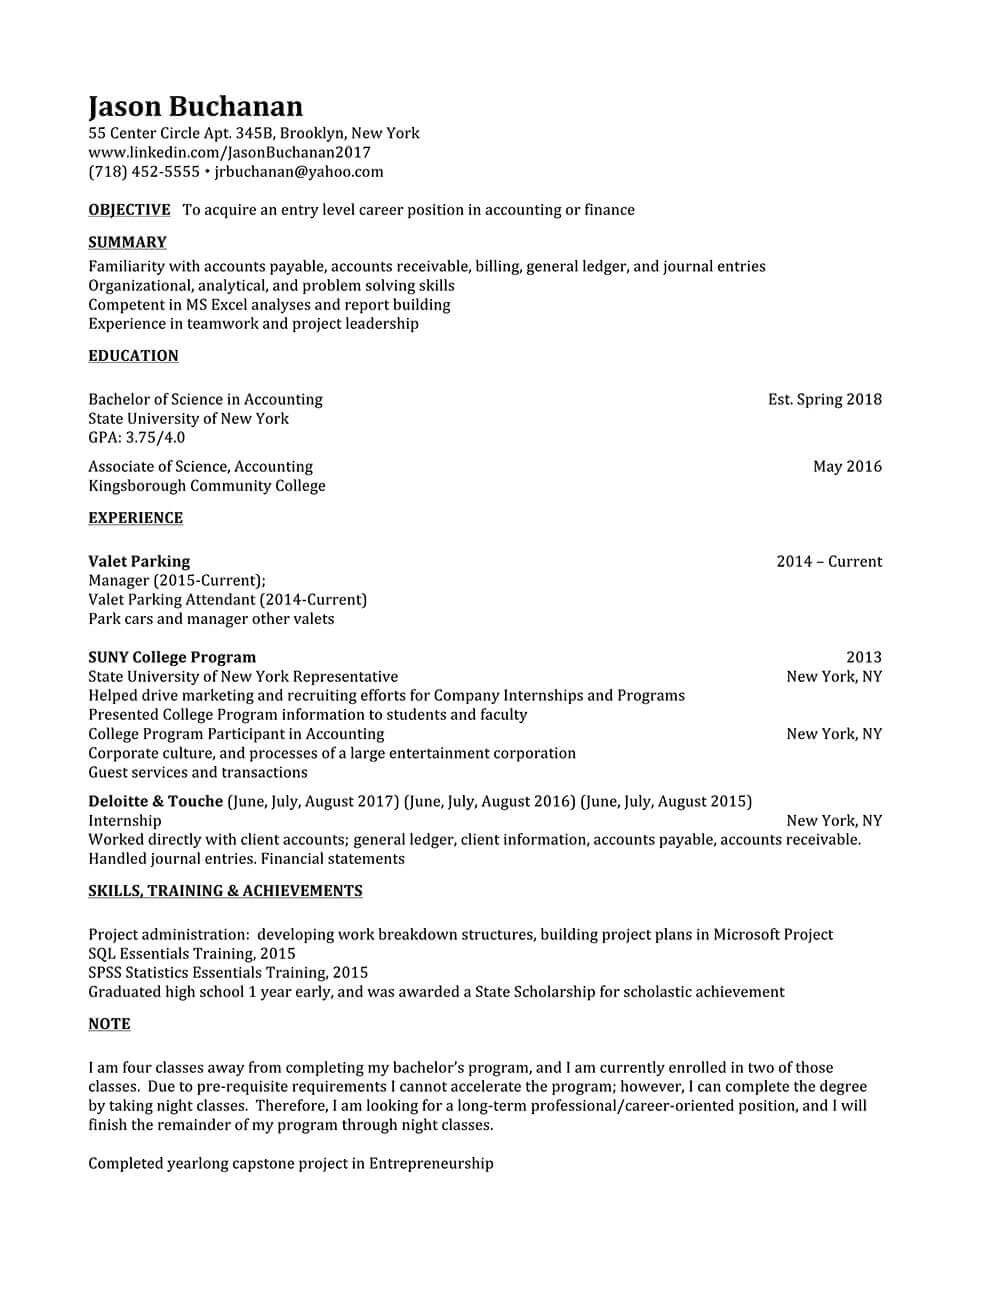 professional resume writing services monster before quality assurance duties and Resume Monster Resume Writing Services